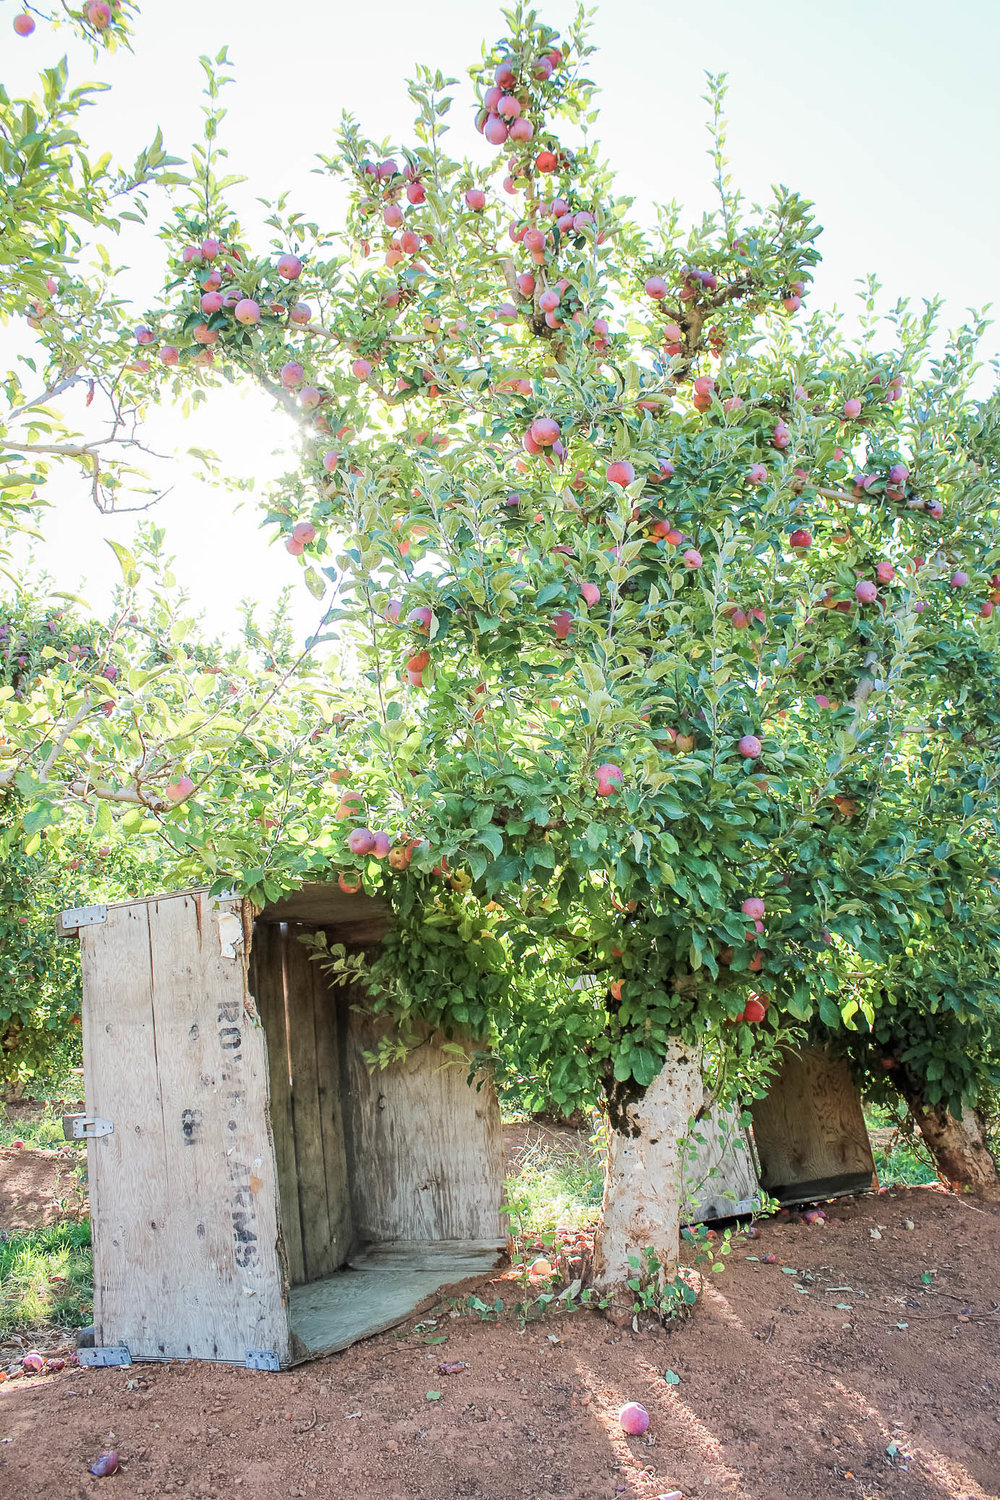 Apples at Kids Inc/Delfino Family Farm in Apple Hill, CA